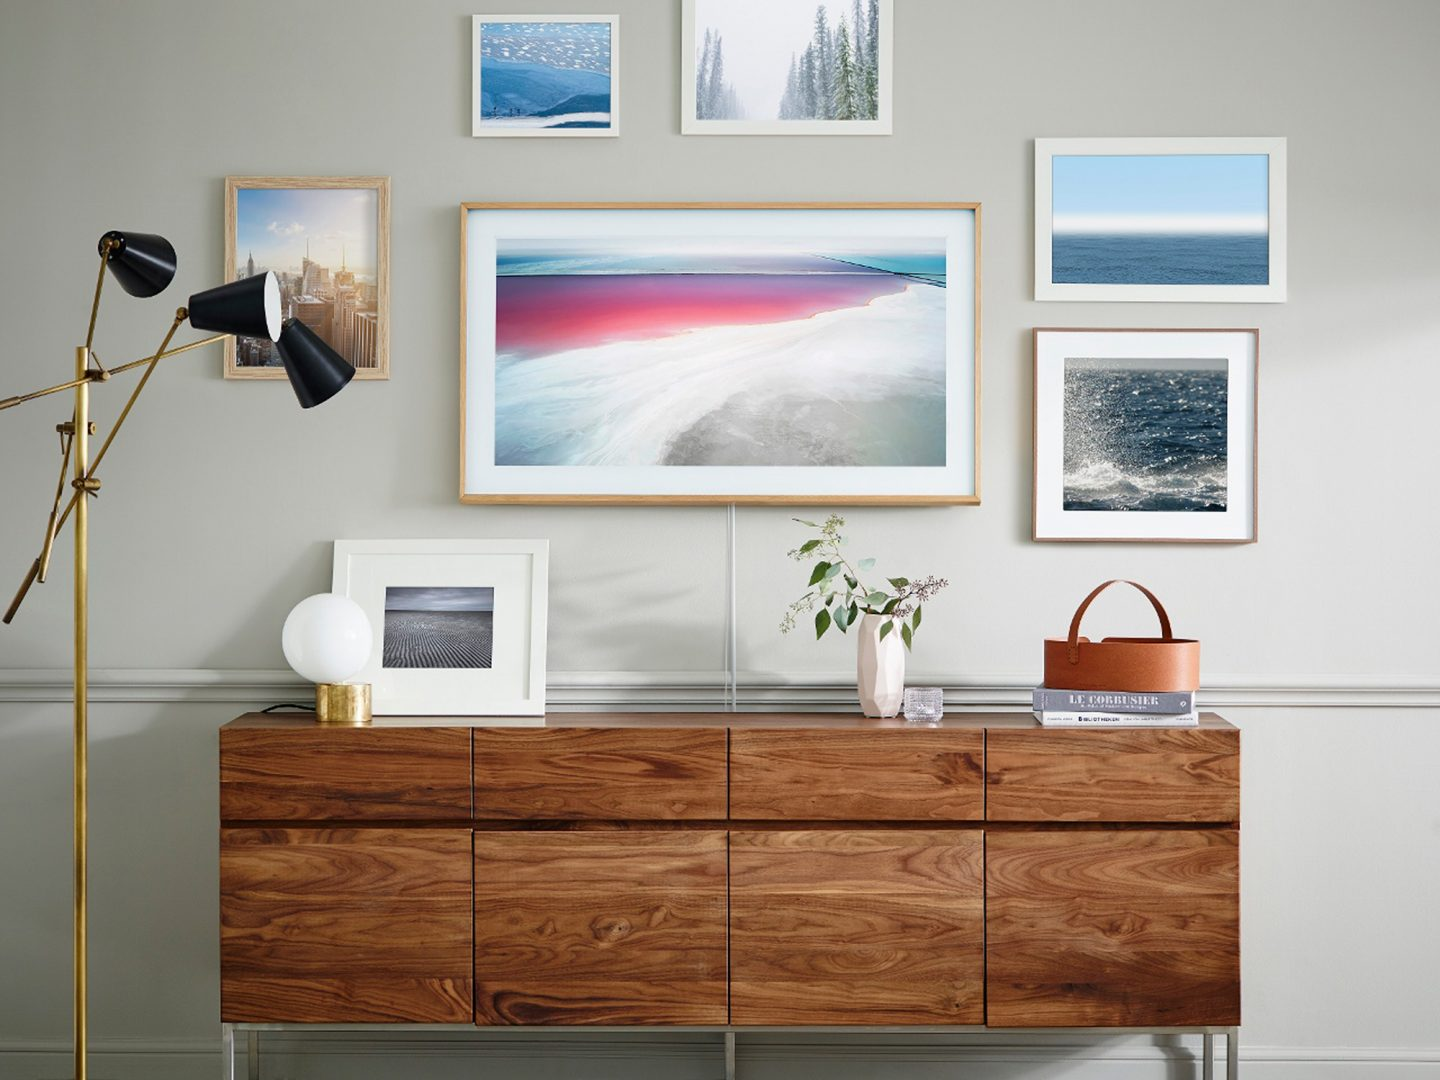 ignant-samsung-The-Frame-Lifestyle-tv